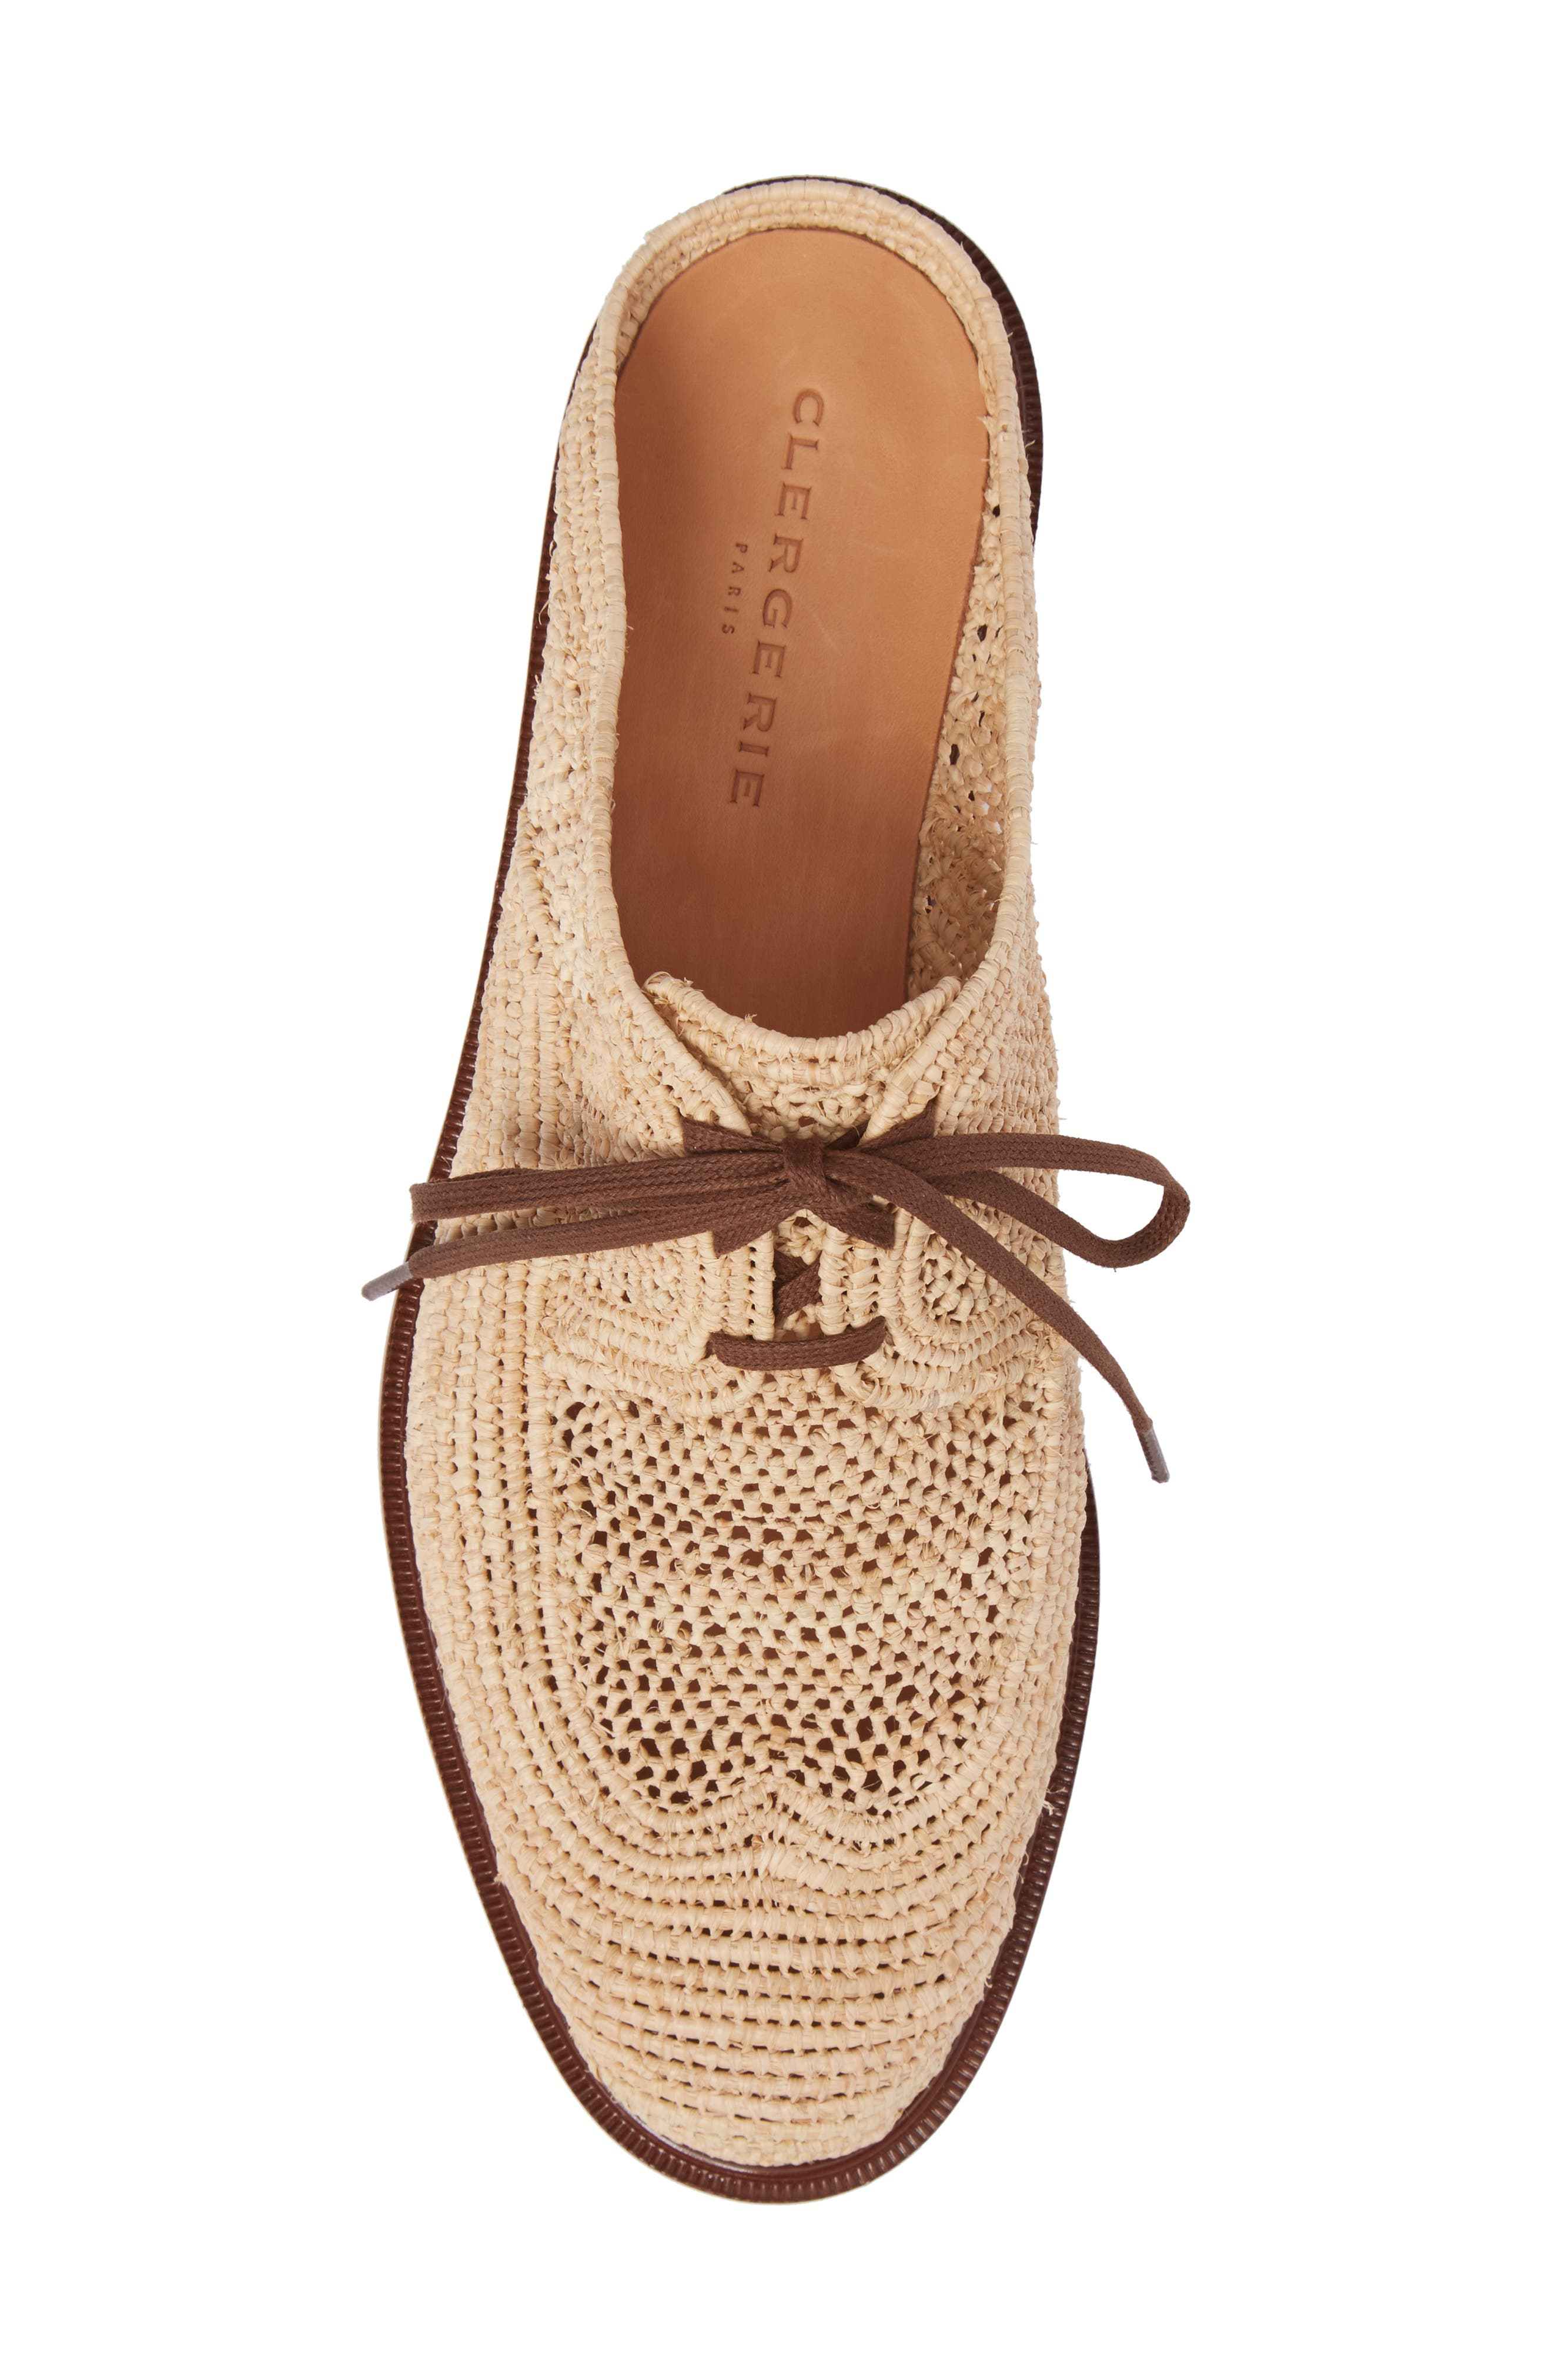 Jaly Woven Loafer Mule,                             Alternate thumbnail 5, color,                             250